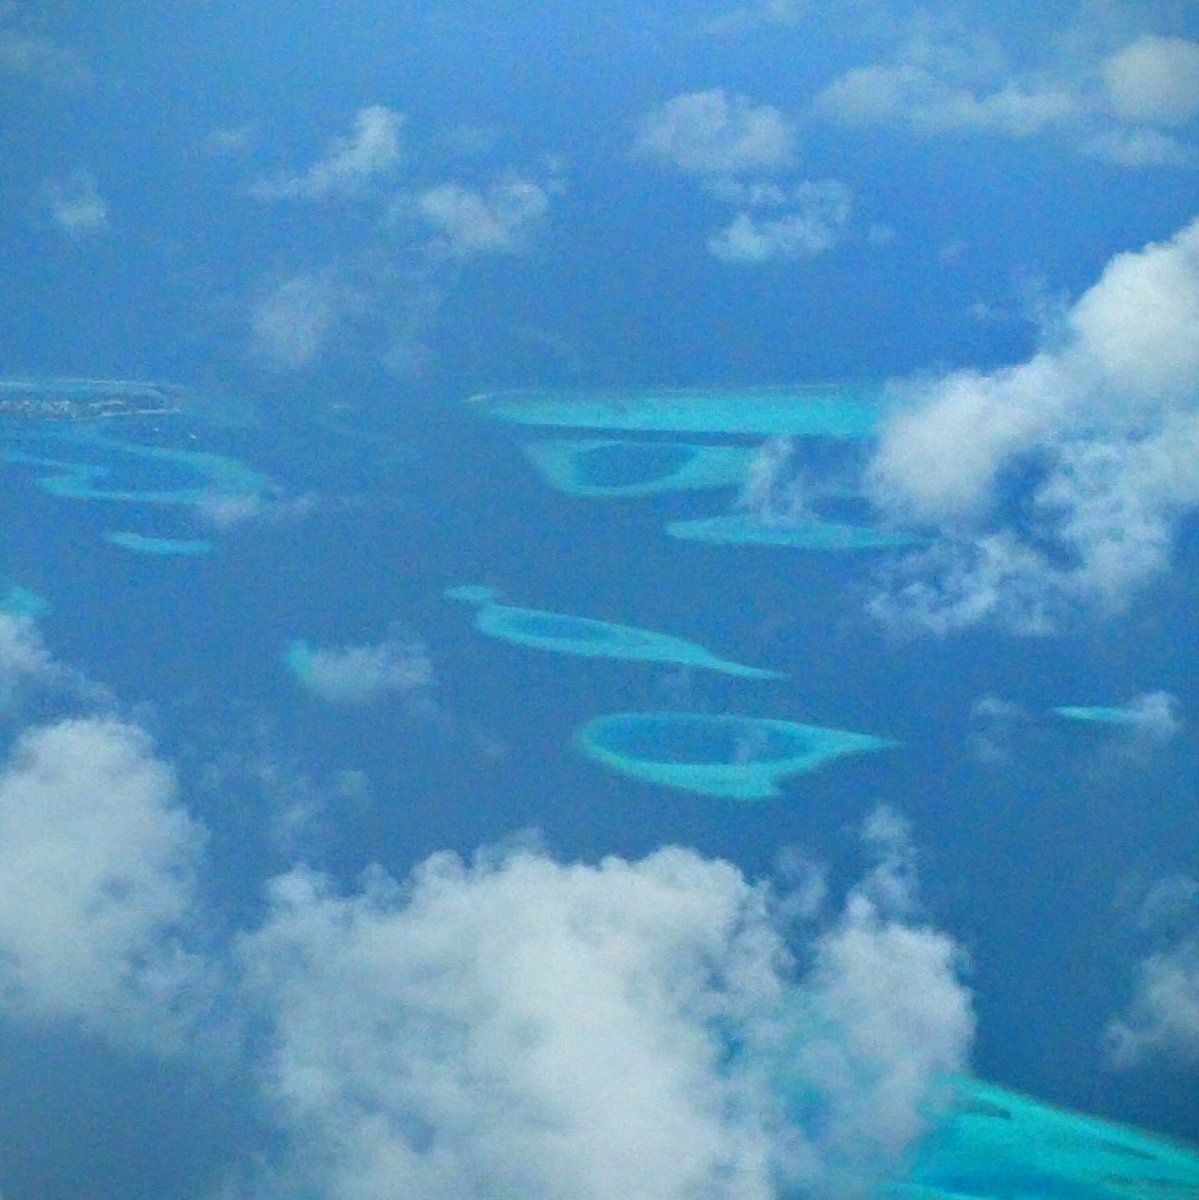 Farewell to the Maldives & the wonderful people in @UNDPMaldives - a great week in #dronesforgood #aviation #climate https://t.co/Y8leOBDeqK